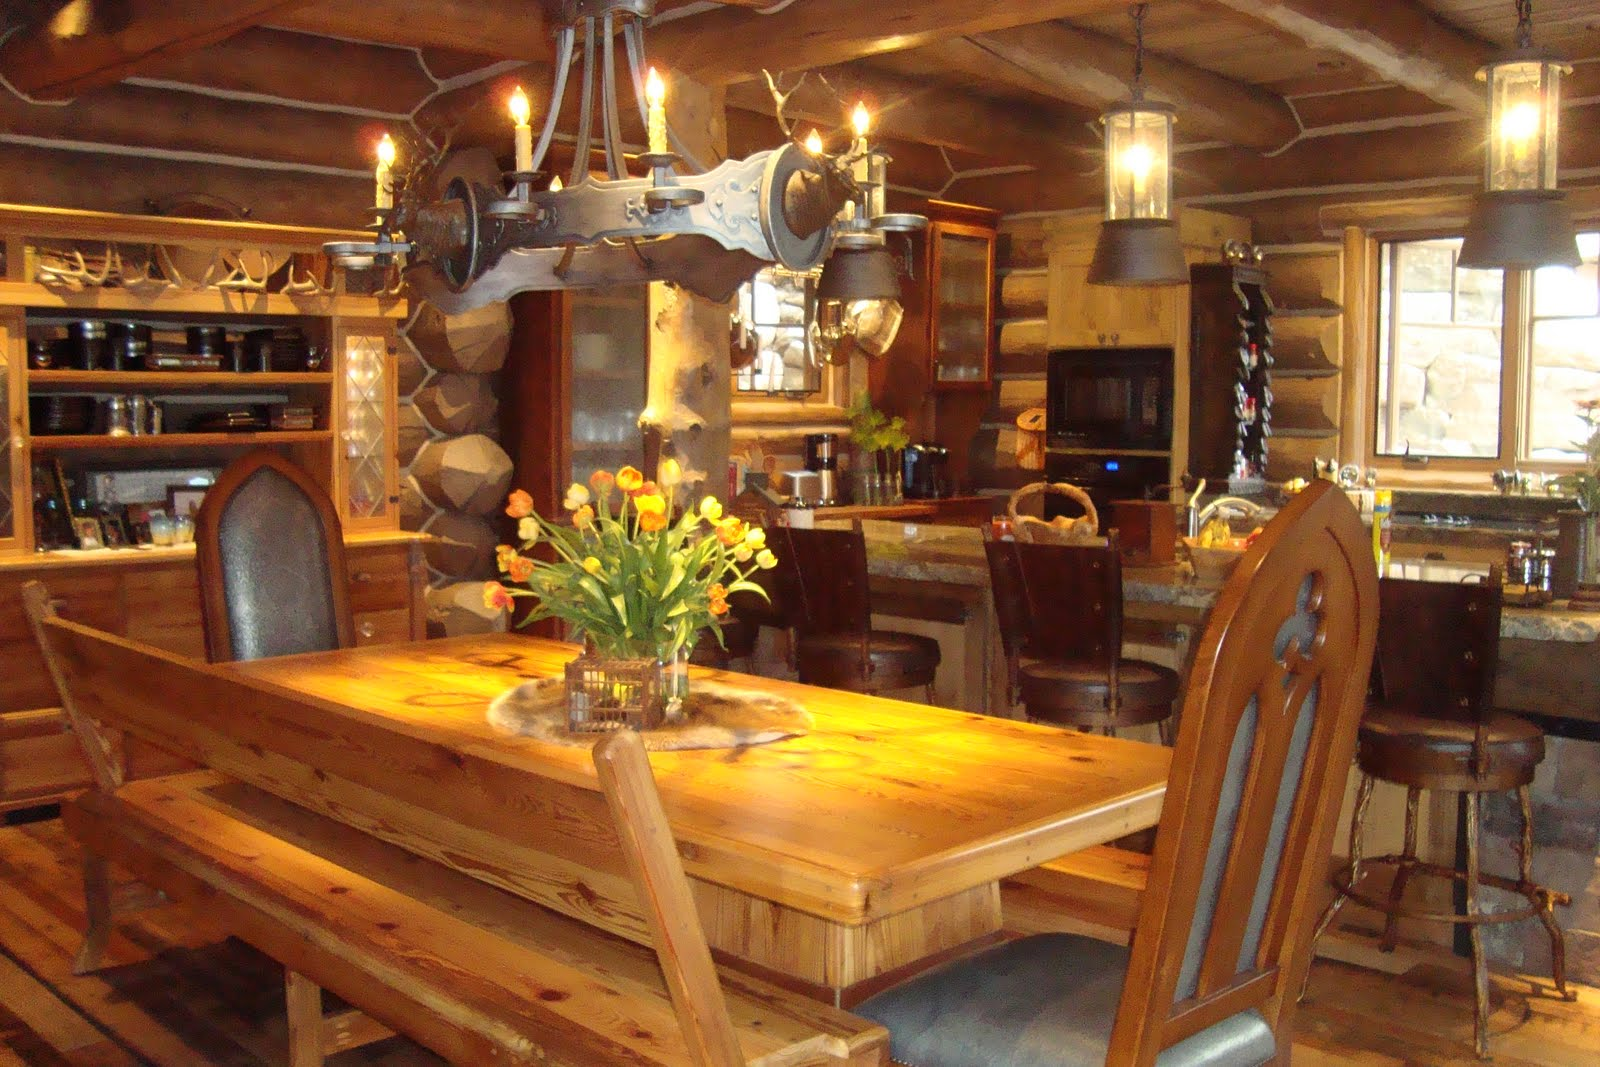 Best style log cabin style home for great escapism that for Interior designs for log cabins